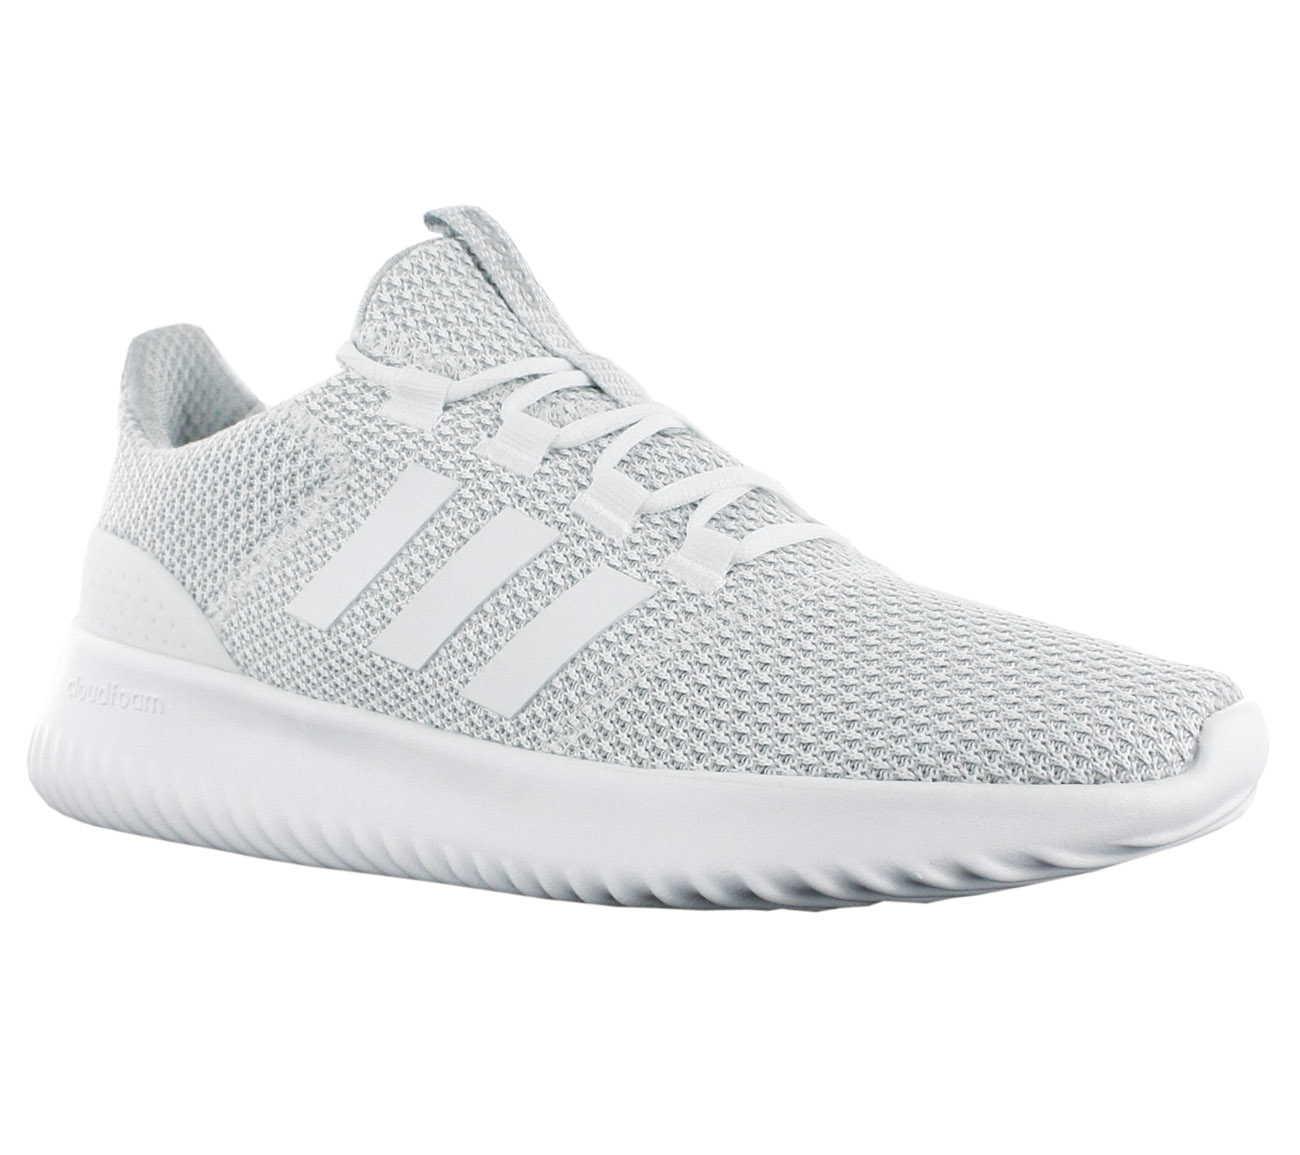 NEW adidas Cloudfoam Ultimate BC0121 Men shoes Trainers Sneakers SALE